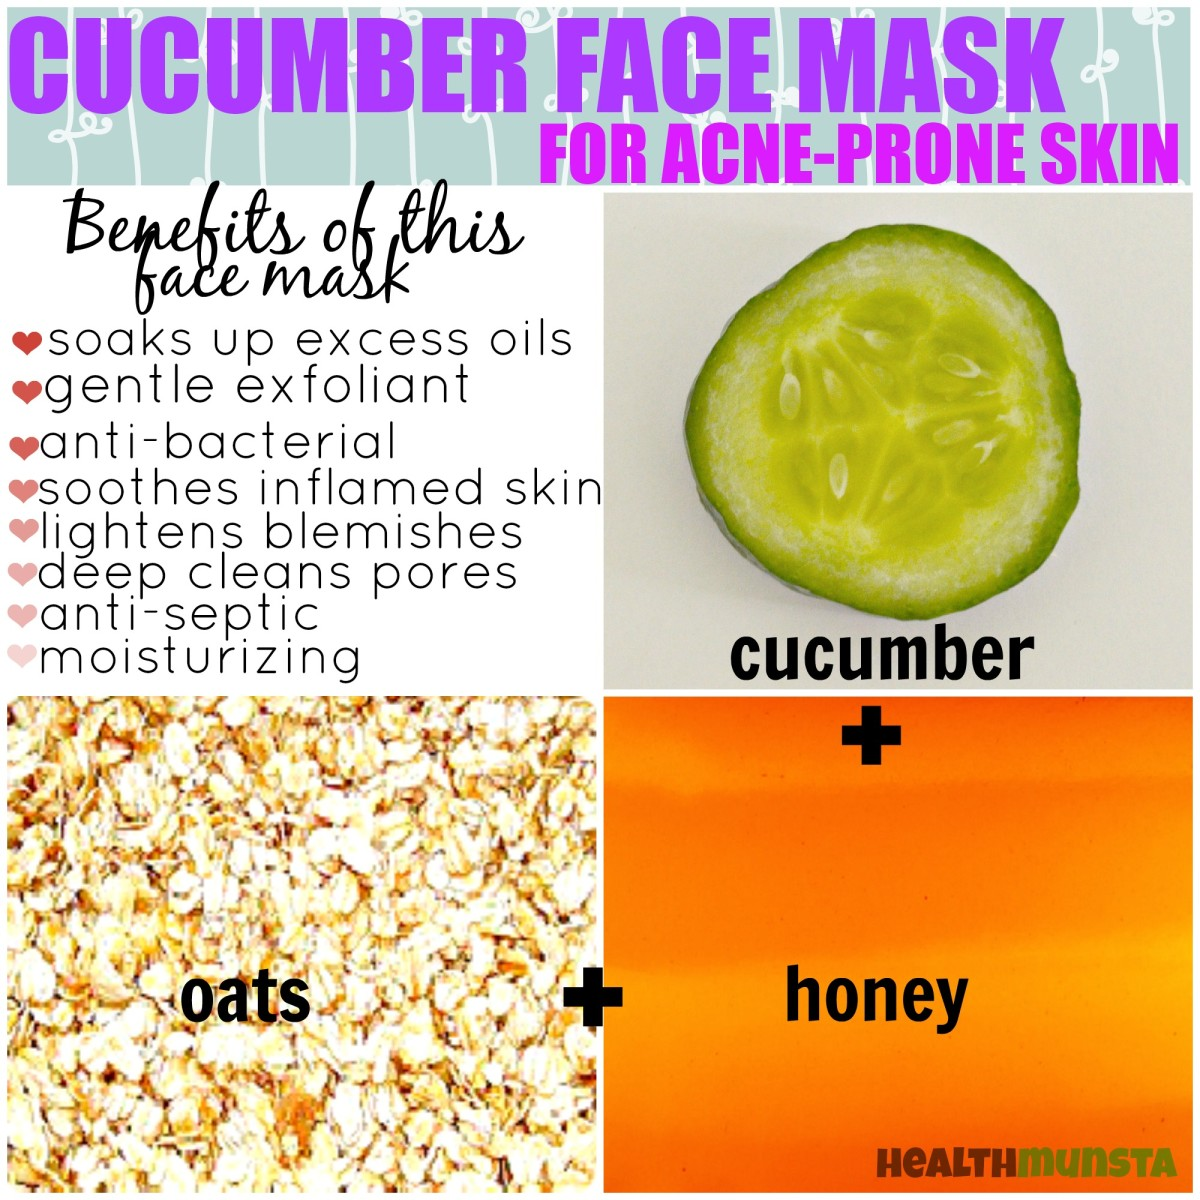 Diy Volcanic Acne And Skin Cleansing Face Mask: Refreshing Cucumber Face Mask Recipes To Nourish Your Skin